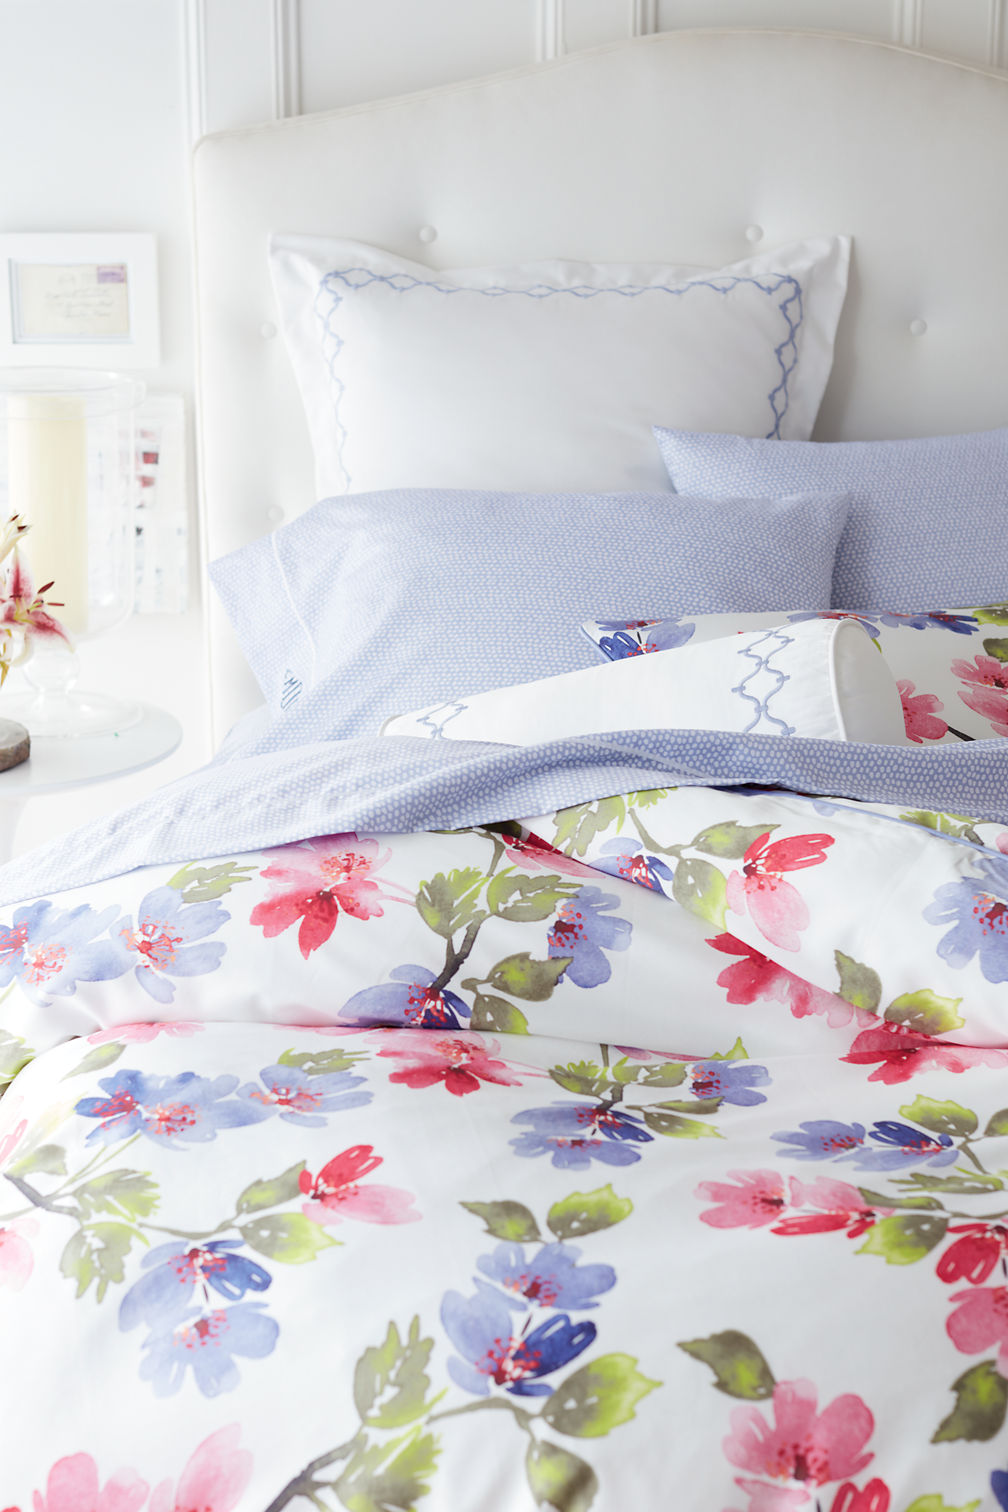 no iron supima floral duvet cover. no iron supima floral duvet cover and sham from lands' end